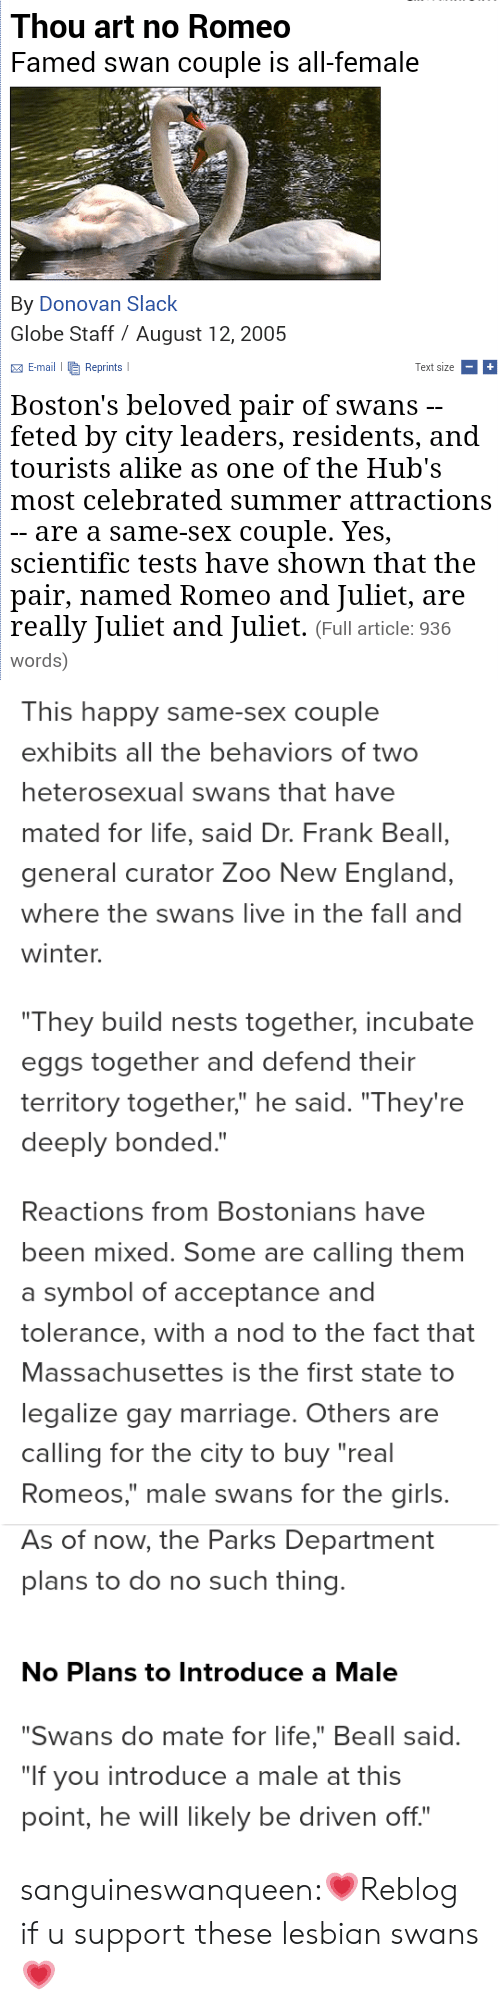 """Thou Art: Thou art no Romeo  Famed swan couple is all-female  By Donovan Slack  Globe Staff August 12, 2005    E-mail Reprints  Text size  Boston's beloved pair of swans -  feted by city leaders, residents, and  tourists alike as one of the Hub's  most celebrated summer attractions  - are a same-sex couple. Yes,  scientific tests have shown that the  pair, named Romeo and Juliet, are  really Juliet and Juliet. (Full article: 936  words)   This happy same-sex couple  exhibits all the behaviors of two  heterosexual swans that have  mated for life, said Dr. Frank Beall,  general curator Zoo New England,  where the swans live in the fall and  winter.  """"They build nests together, incubate  eggs together and defend their  territory together,"""" he said. """"They're  deeply bonded.""""   Reactions from Bostonians have  been mixed. Some are calling them  a symbol of acceptance and  tolerance, with a nod to the fact that  Massachusettes is the first state to  legalize gay marriage. Others are  calling for the city to buy """"real  Romeos,"""" male swans for the girls.   As of now, the Parks Department  plans to do no such thing.  No Plans to Introduce a Male  """"Swans do mate for life,"""" Beall said.  """"If you introduce a male at this  point, he will likely be driven off."""" sanguineswanqueen:💗Reblog if u support these lesbian swans 💗"""